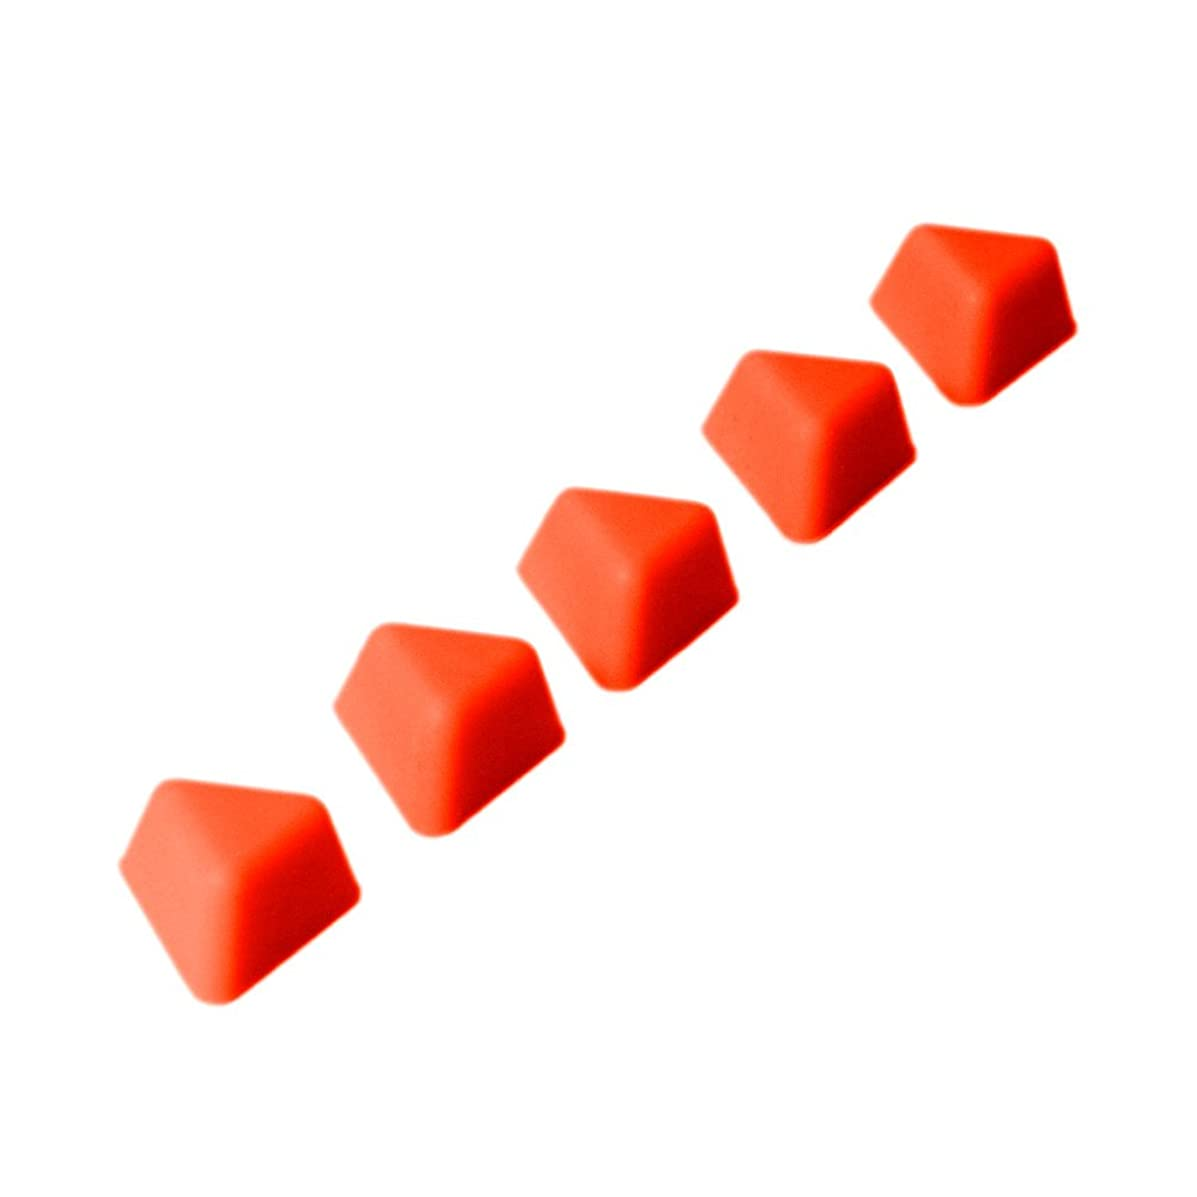 KMN Home DrawerDecor Triangle Divitz, Silicone Adjustable Kitchen Drawer Dividers and Organizers, 5 Pack - Orange